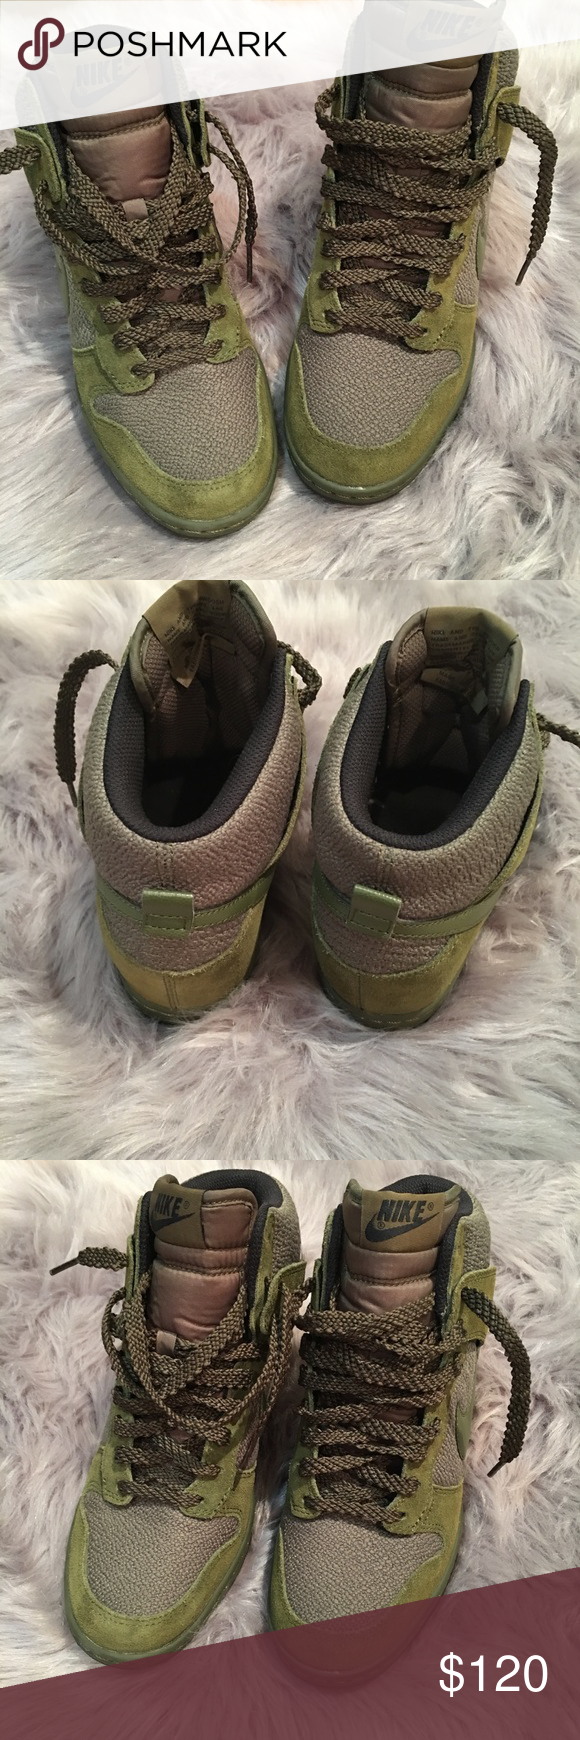 new style 183f3 6c22b Nike Dunk Sky Hi Womens Olive Army Green Wedge 6 Nike Dunk Sky Hi Womens  Olive Army Green Carbon Night Silver Wedge Shoes Sz 6 Nike Shoes Sneakers